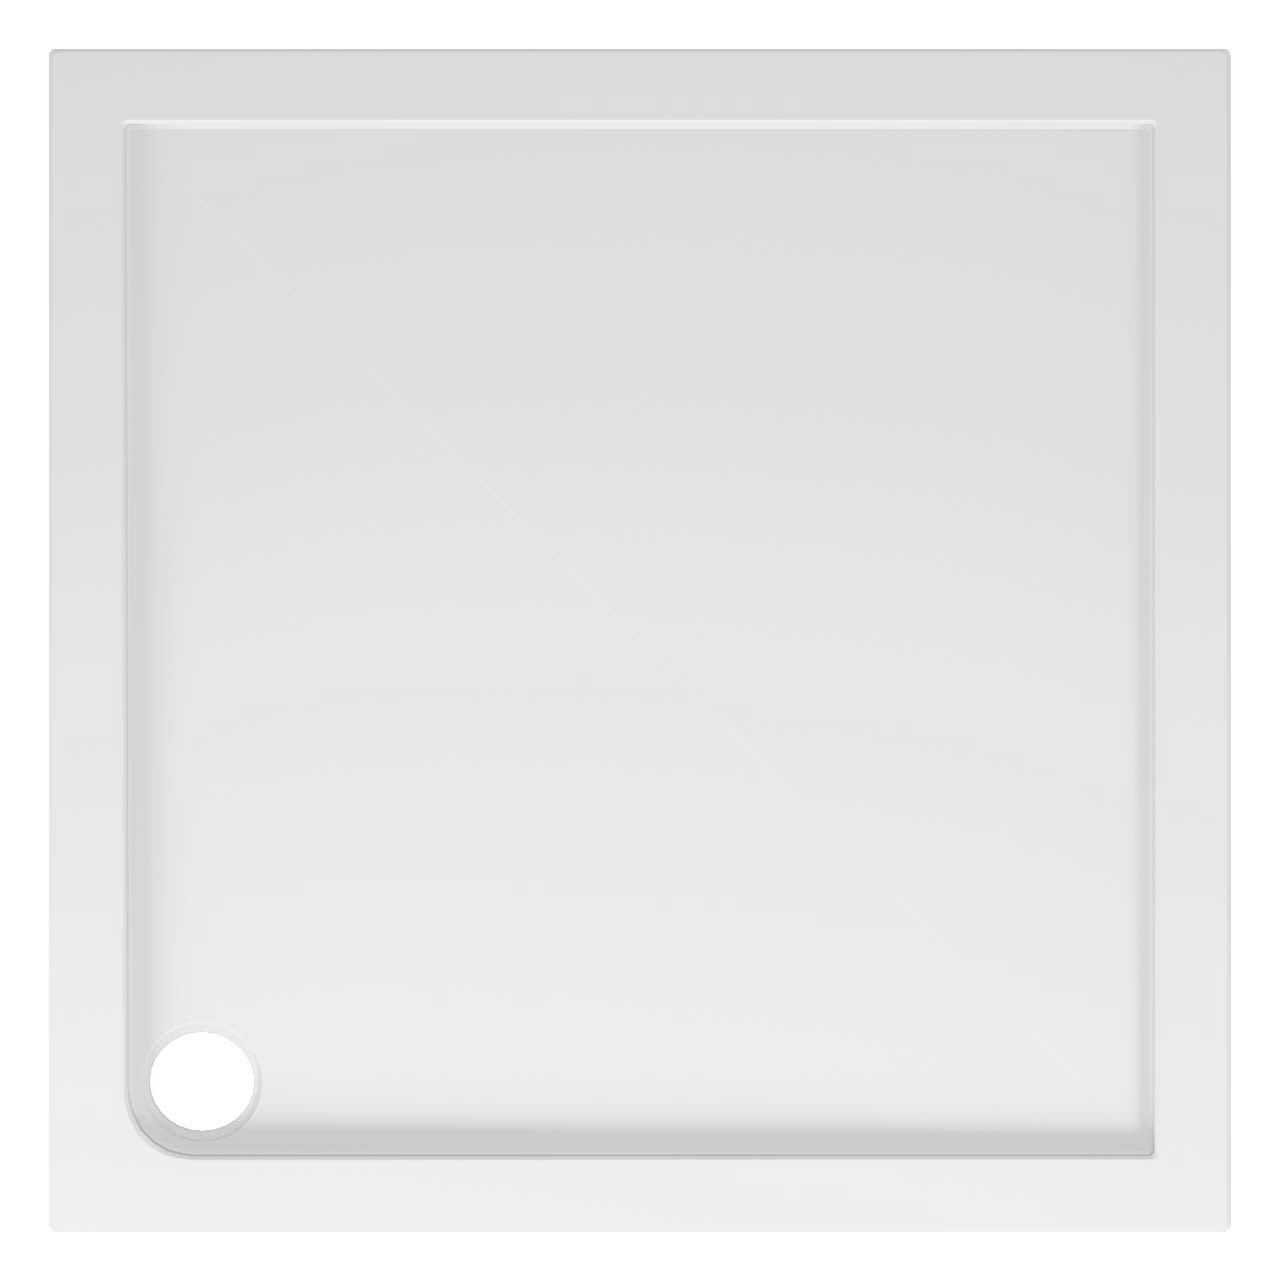 40mm Pearlstone 1000 x 1000 Square Shower Tray